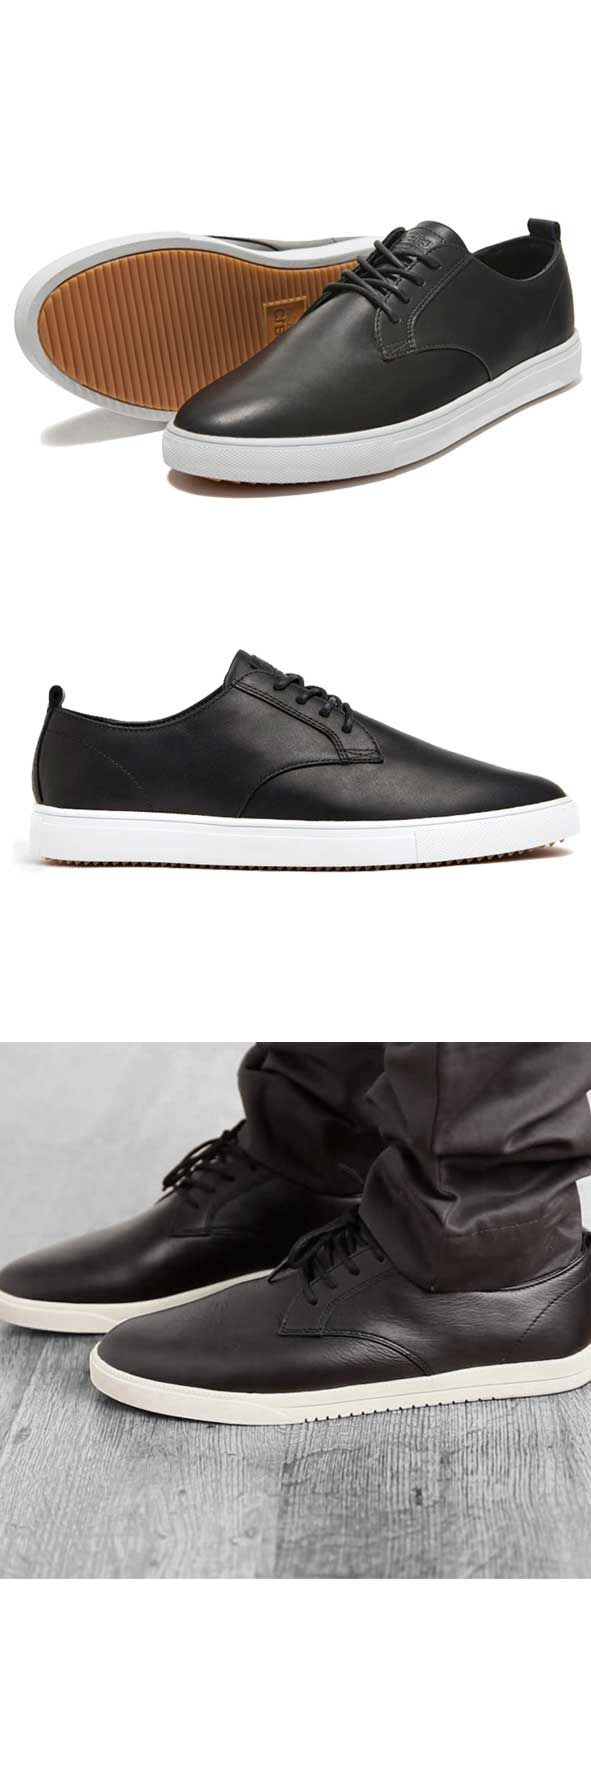 ELLINGTON SP from Clae is a laced design.